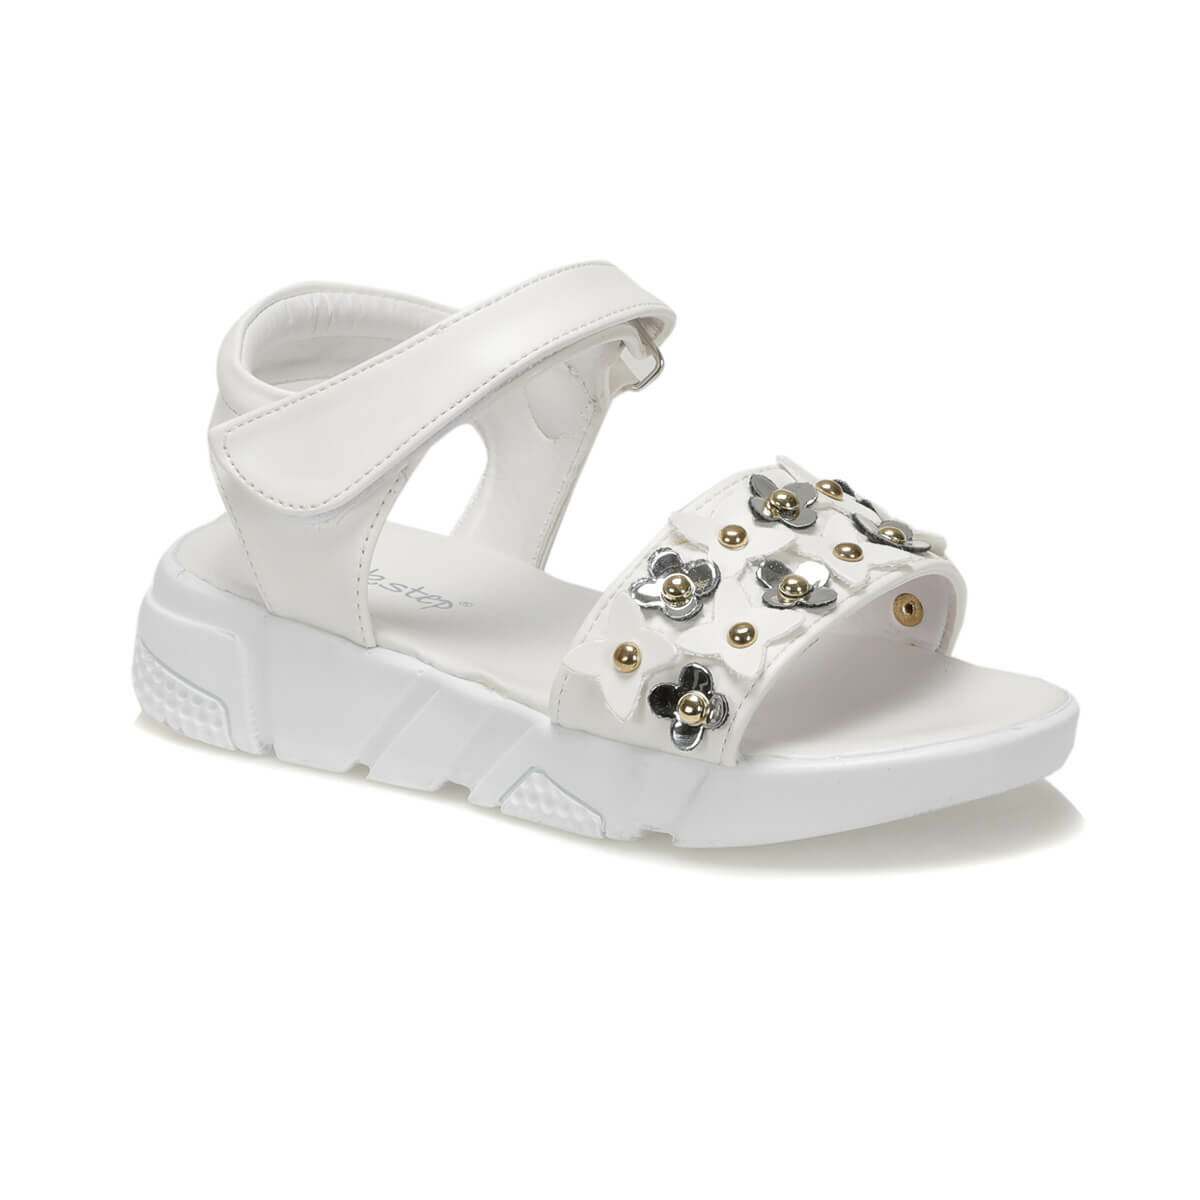 FLO 91. NESIS. F White Female Child Sandals PINKSTEP